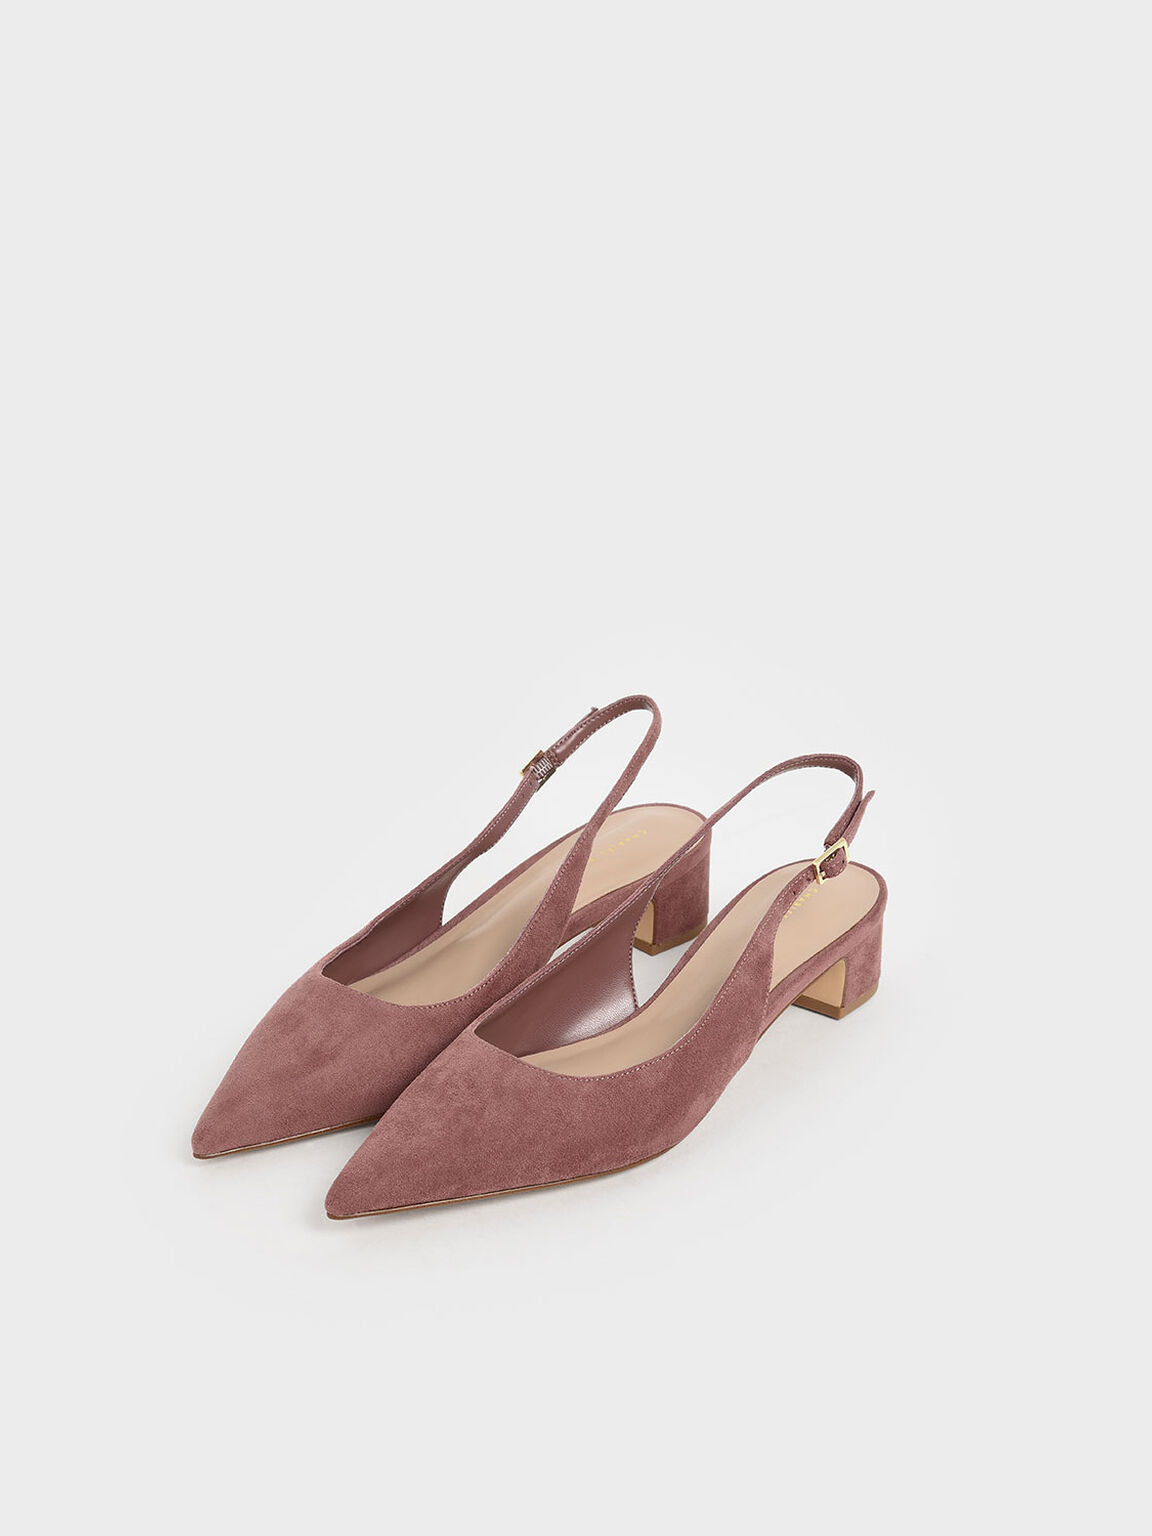 Textured Pointed Toe Slingback Heels, Mauve, hi-res